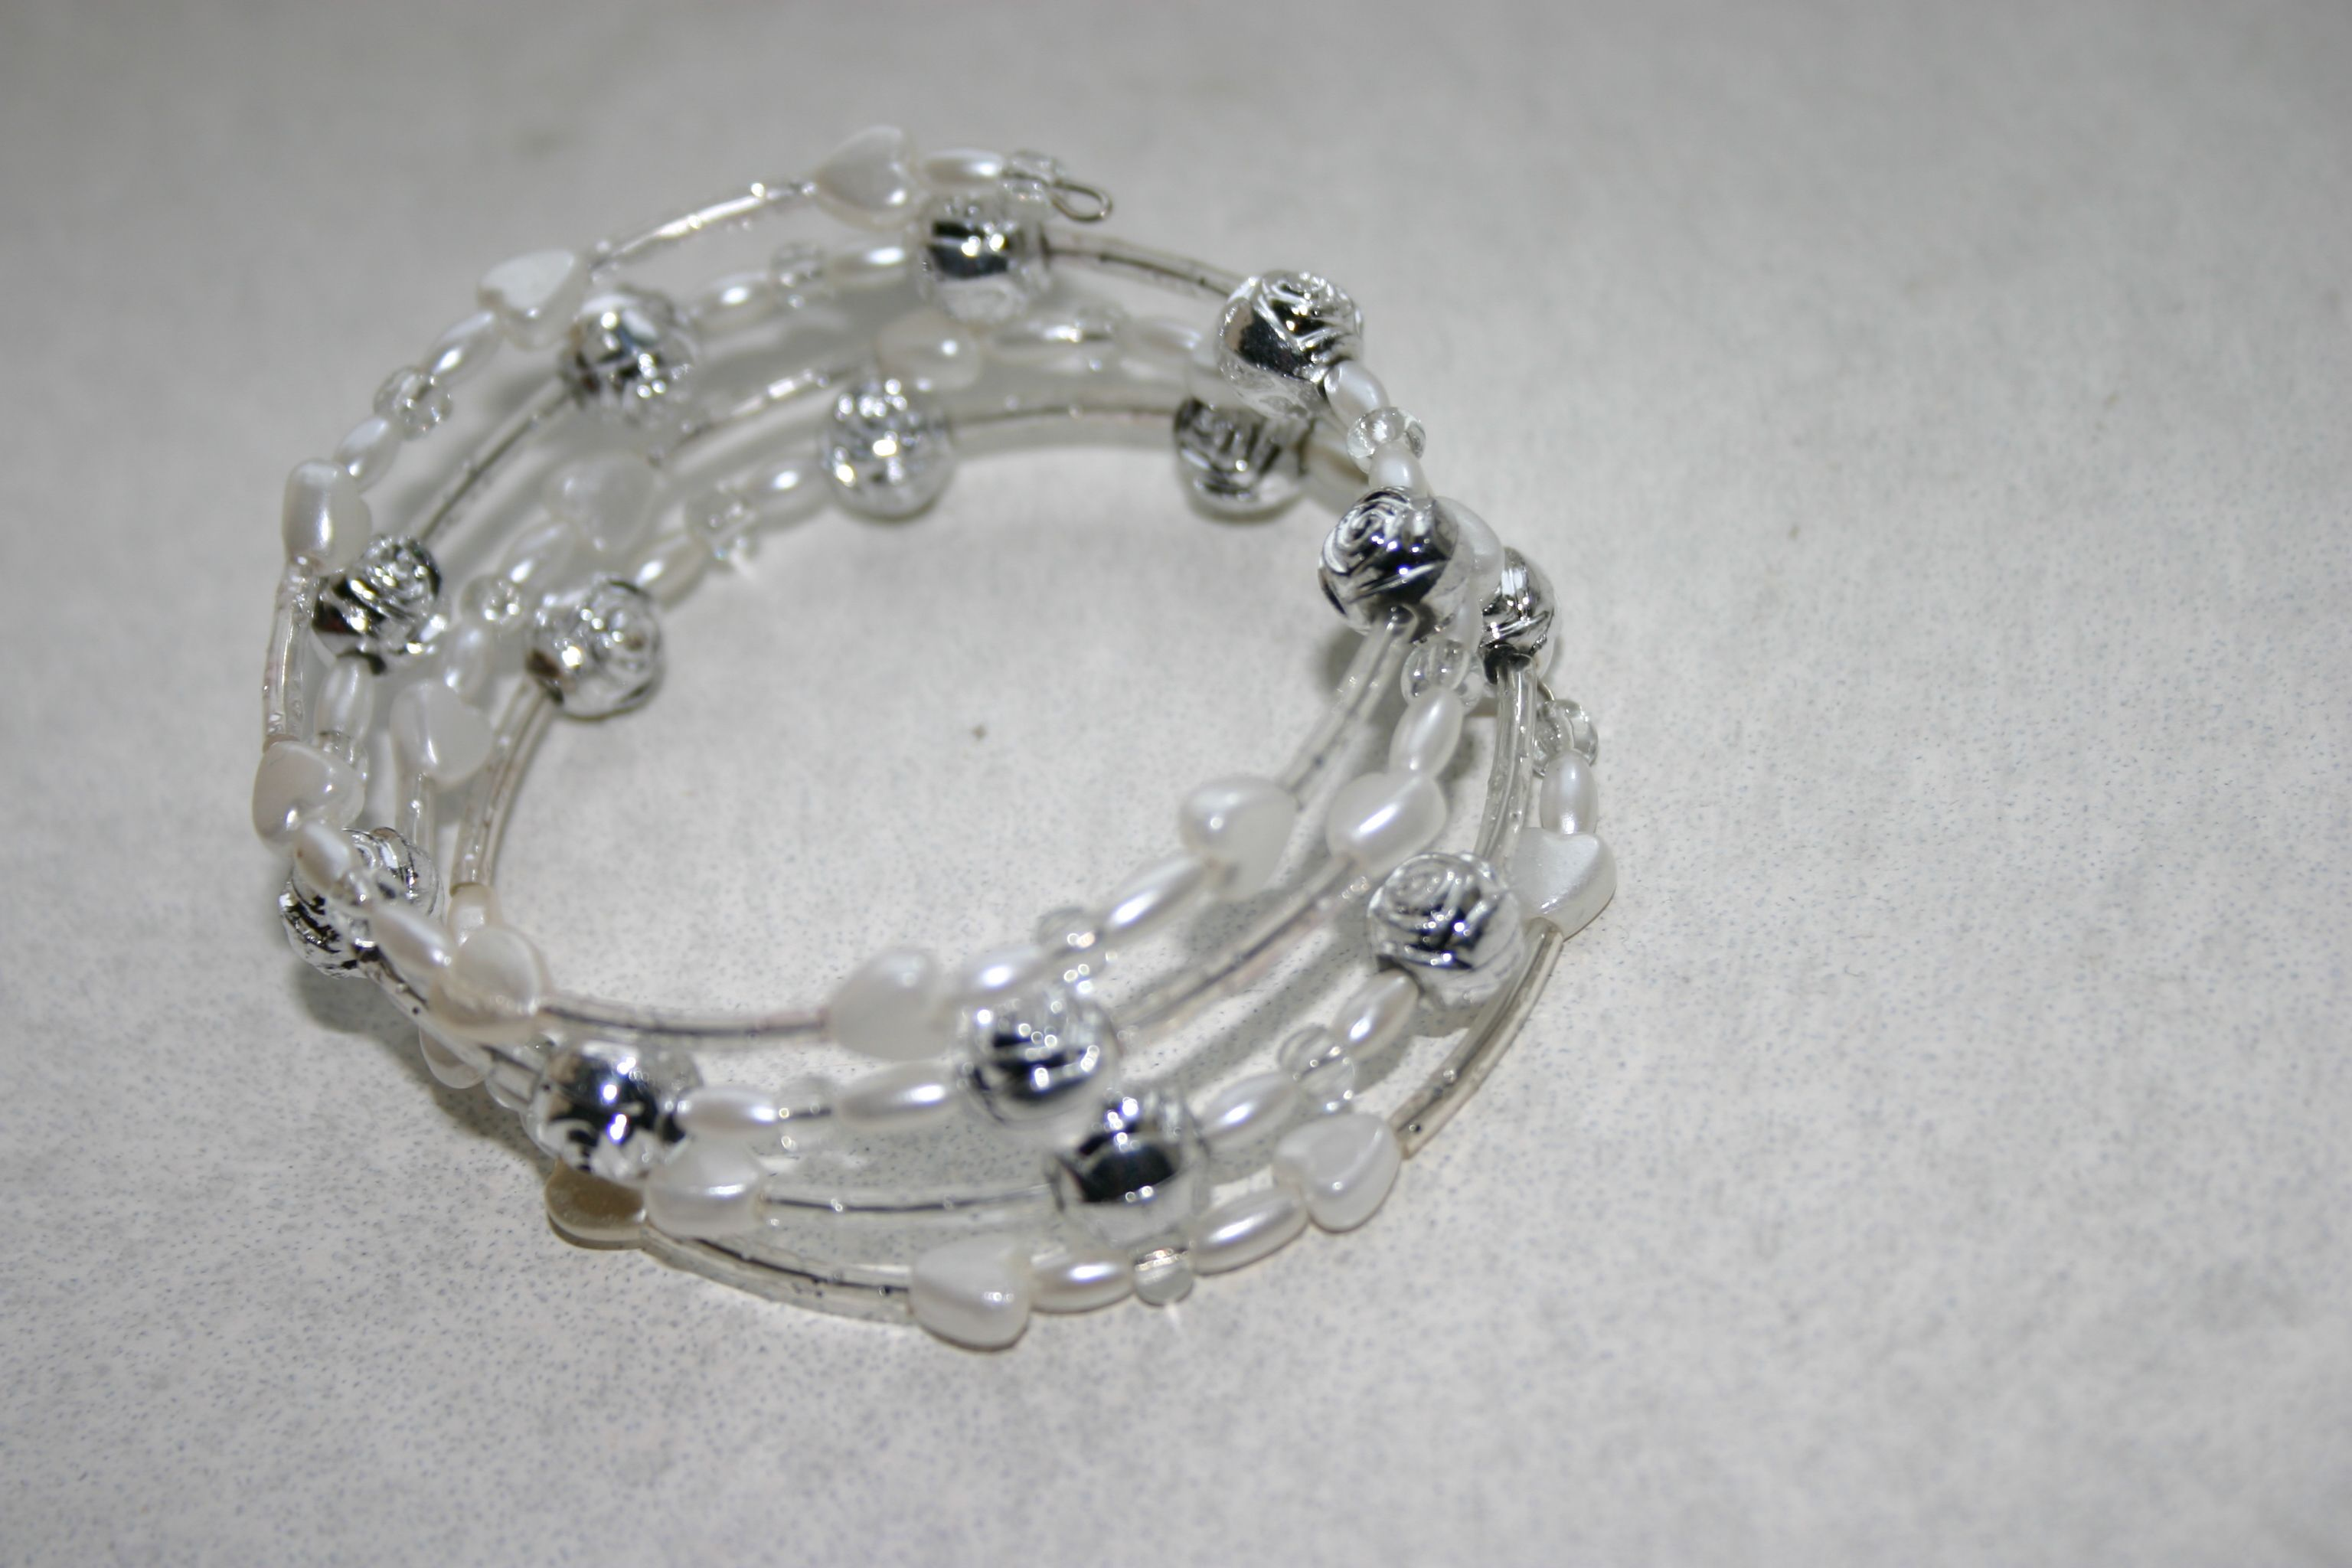 armband 3 wit/zilver